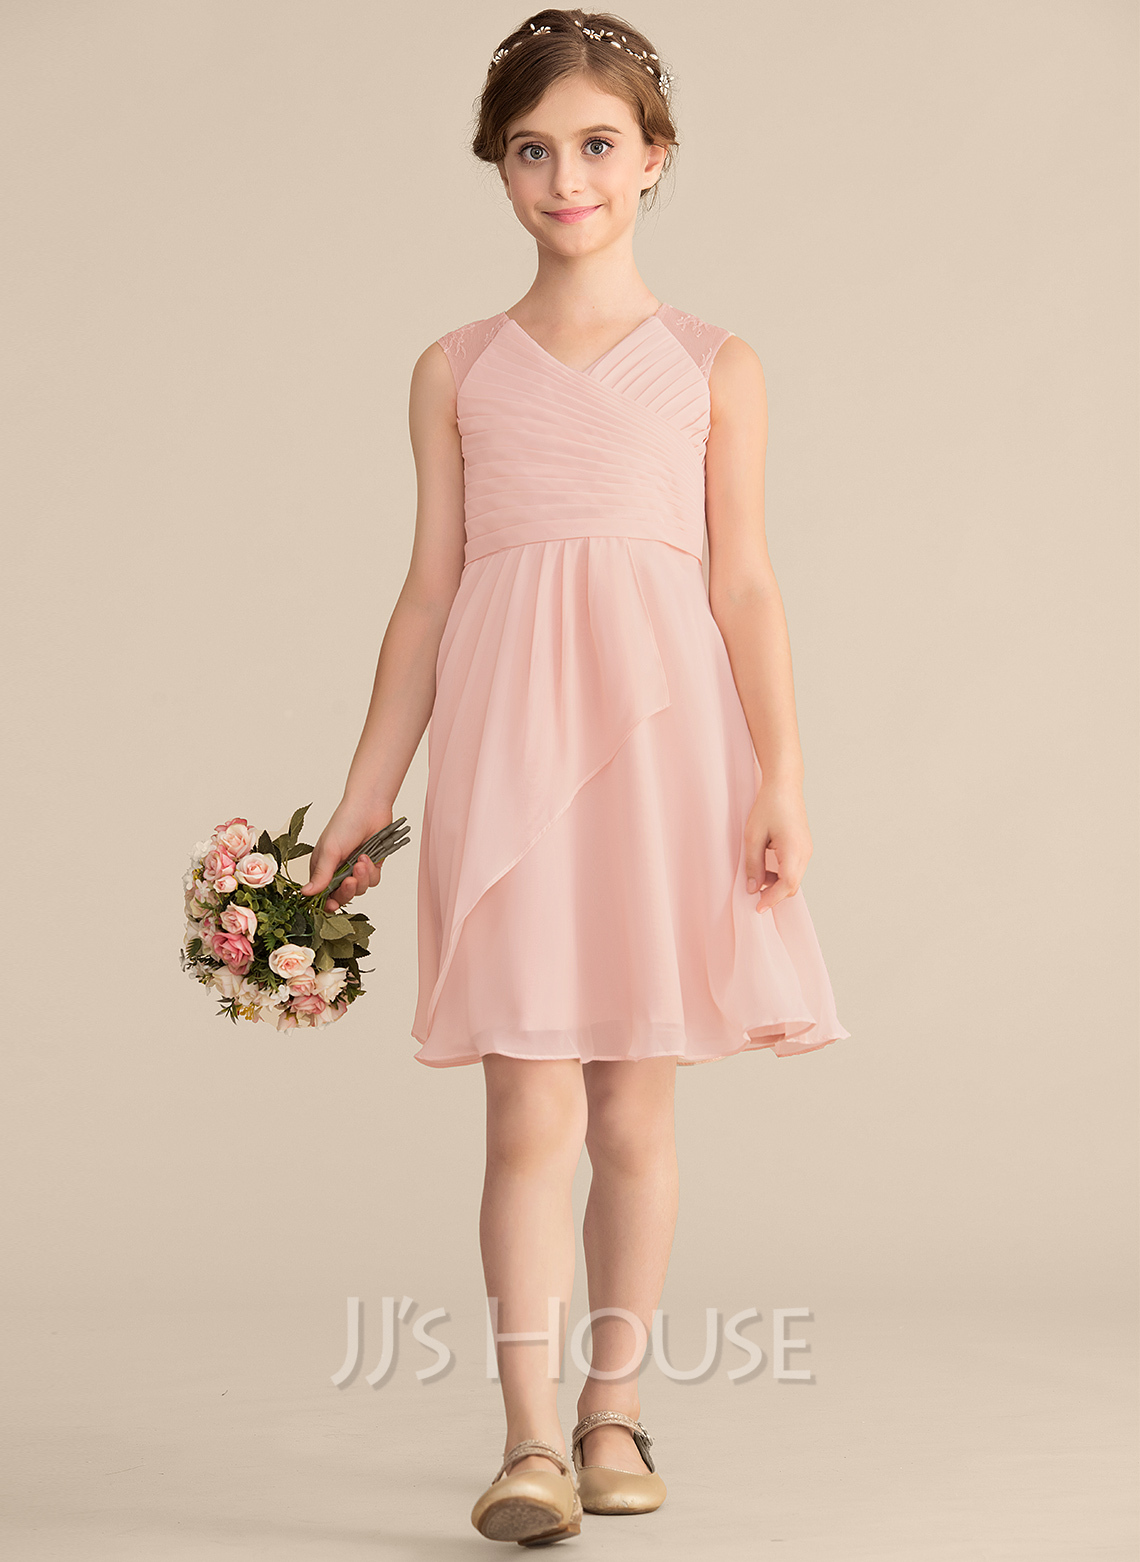 b563ad09a2e25 A-Line/Princess V-neck Knee-Length Chiffon Lace Junior Bridesmaid Dress.  Loading zoom